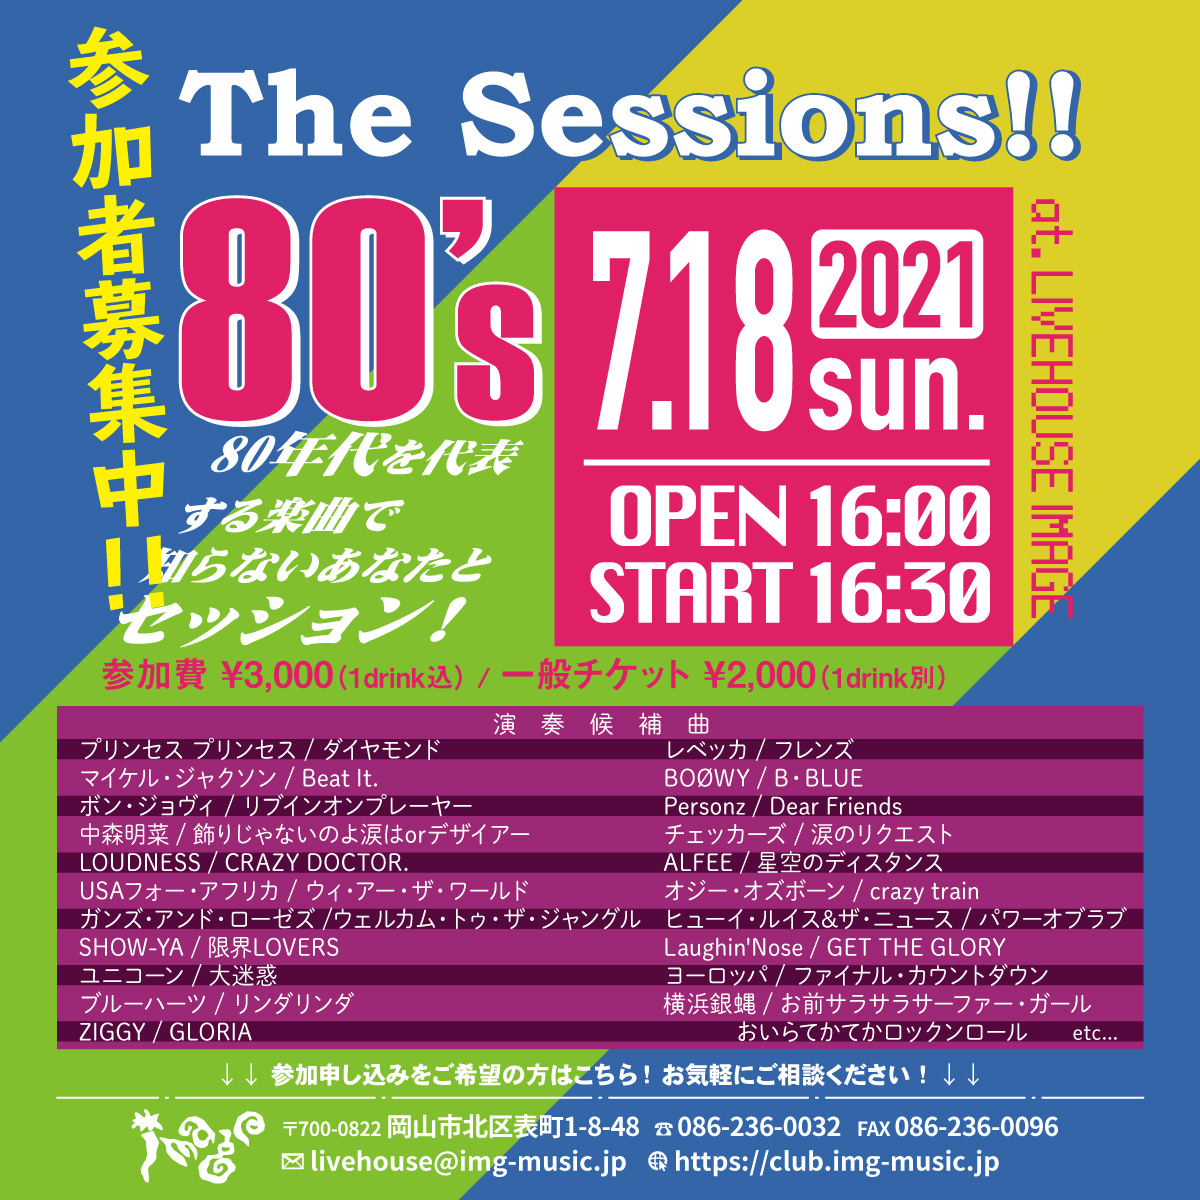 The Sessions!! 80's